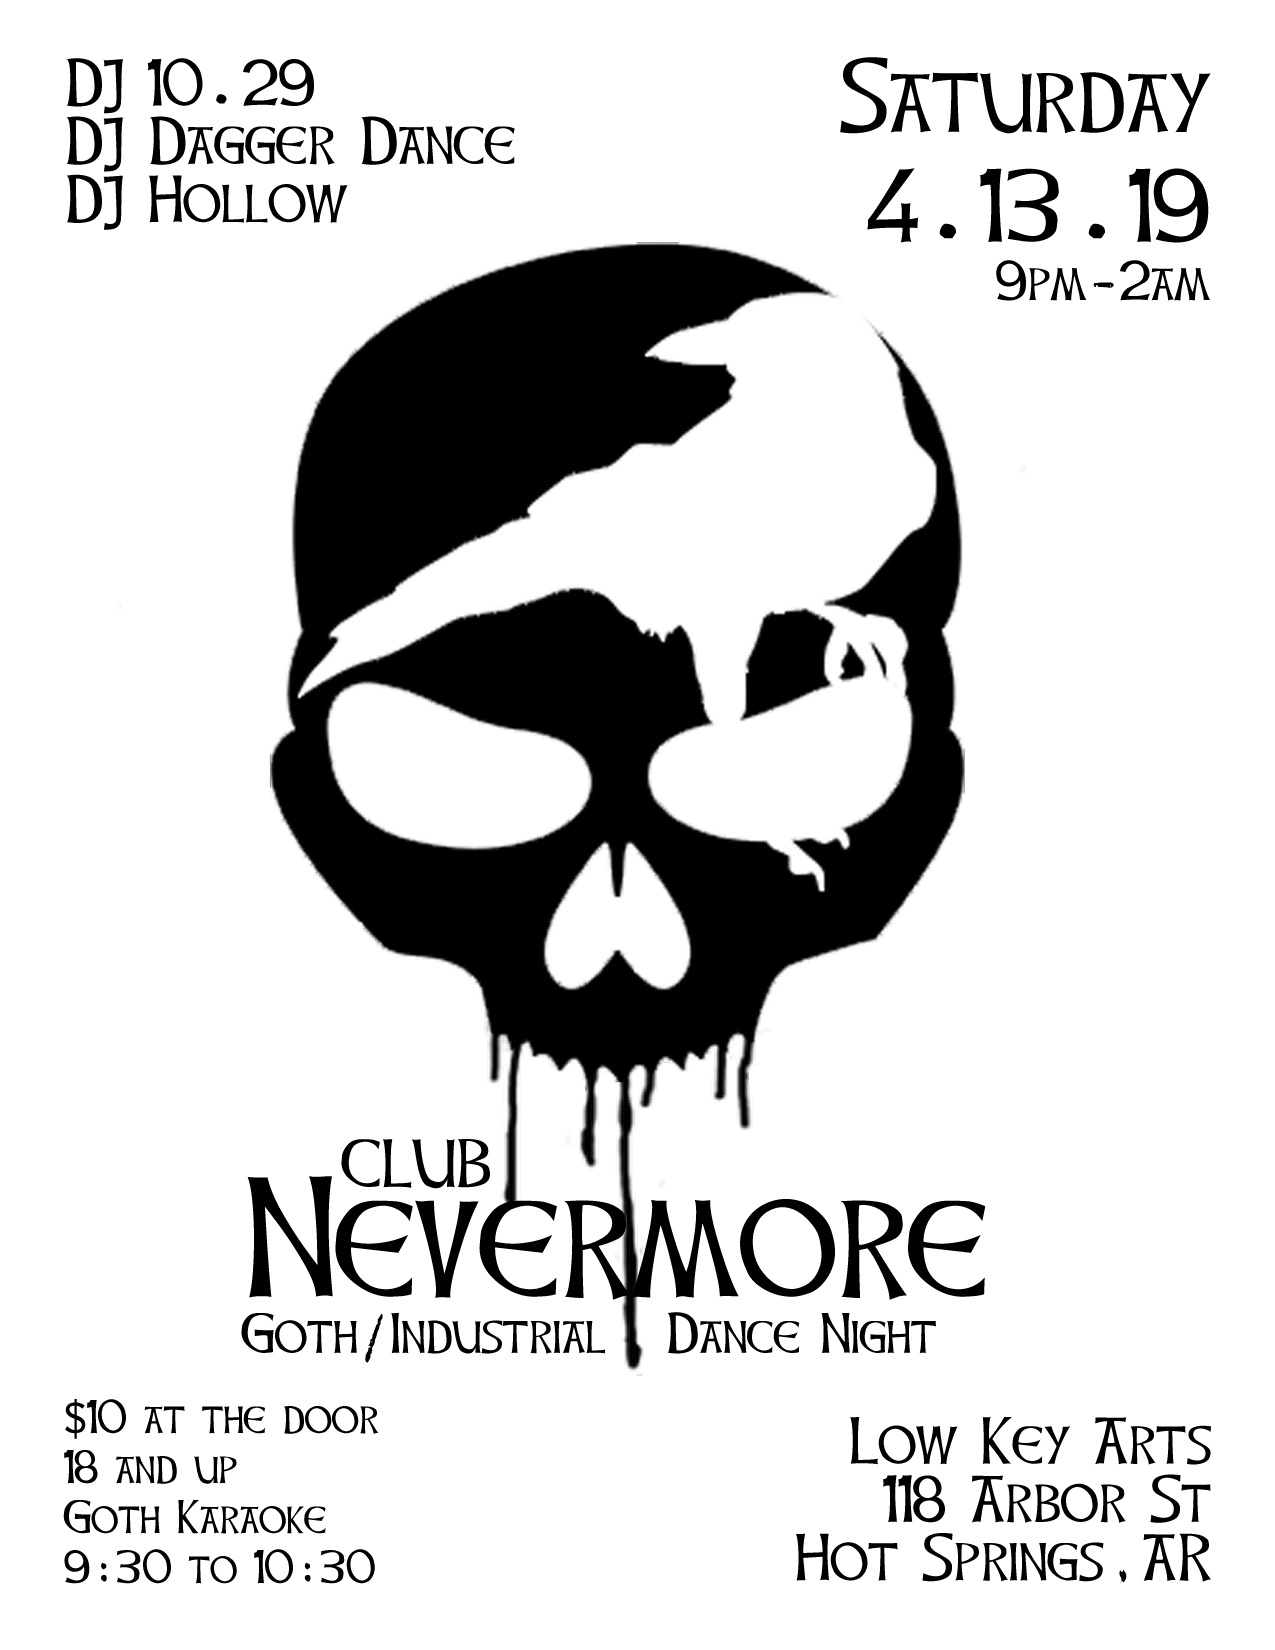 Flyer for Club Nevermore, goth-industrial dance night, in Hot Springs